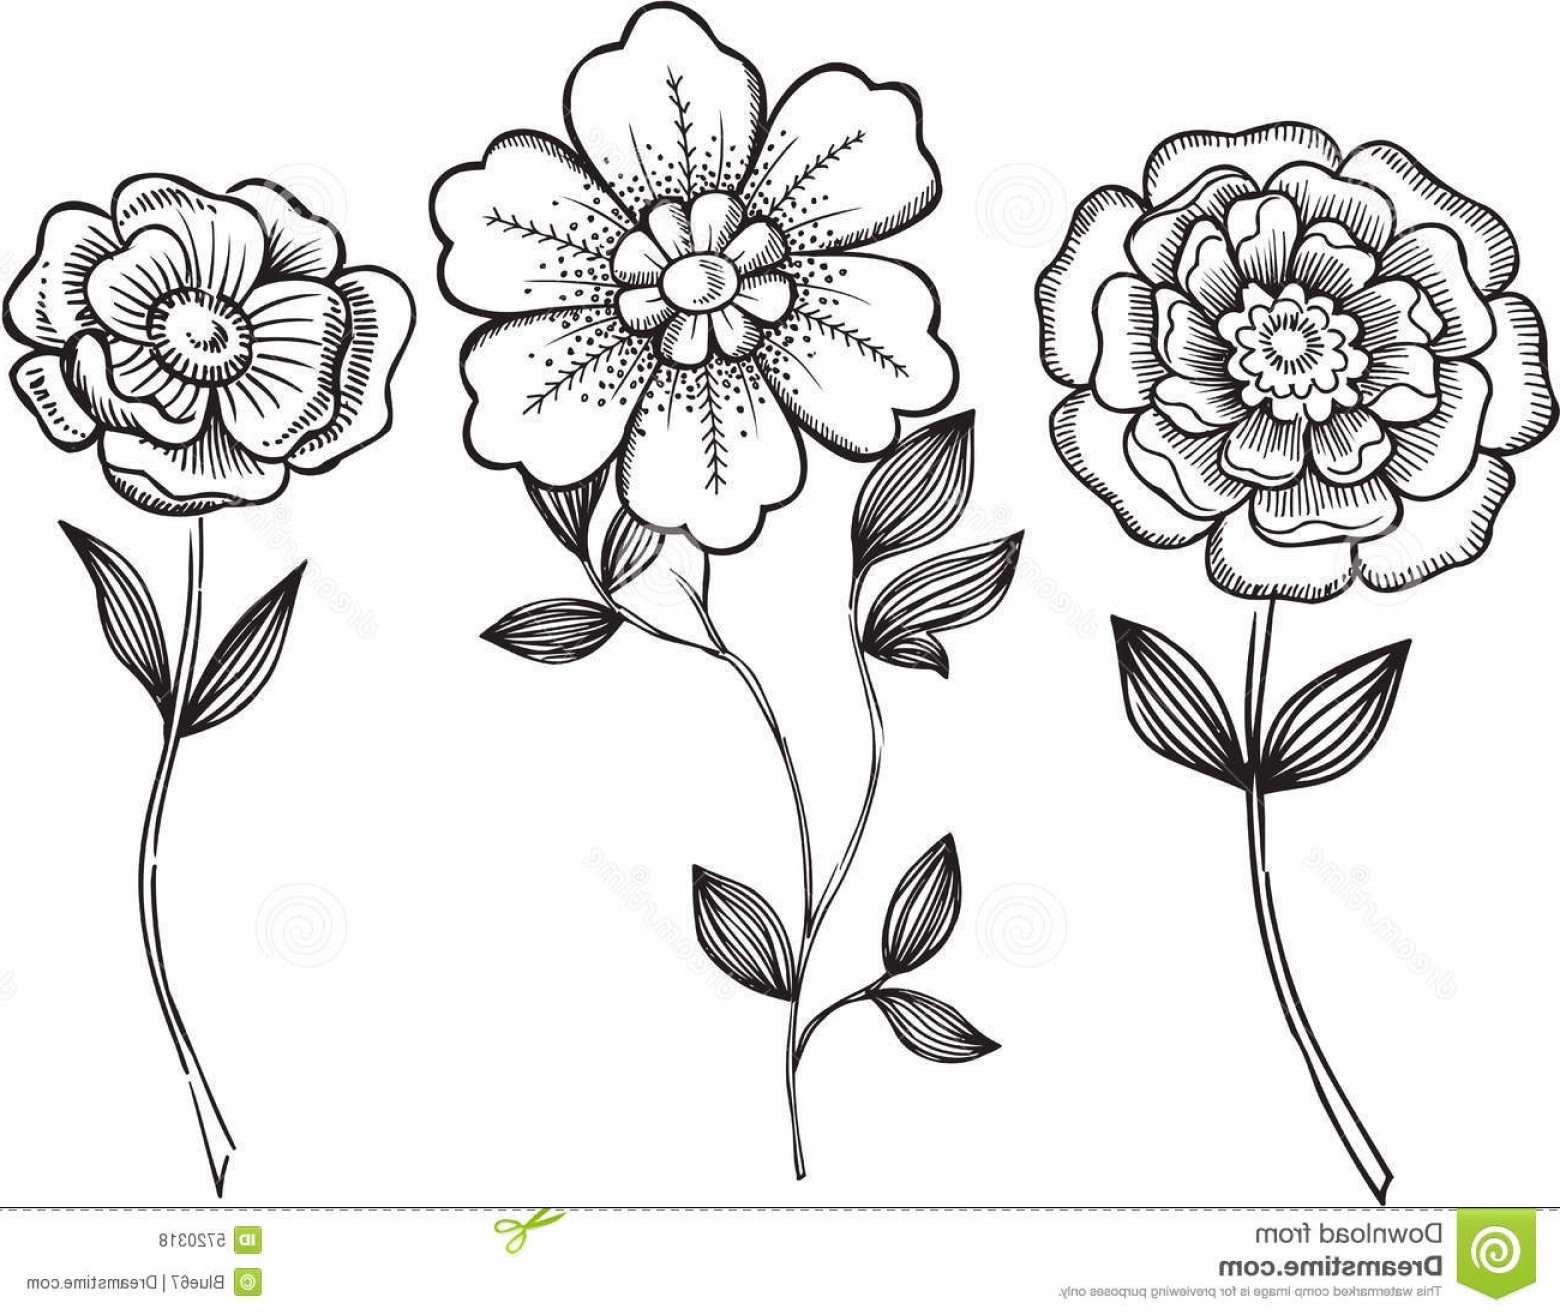 Floral Vector Illustration: Royalty Free Stock Photos Ornamental Flowers Vector Illustration Image